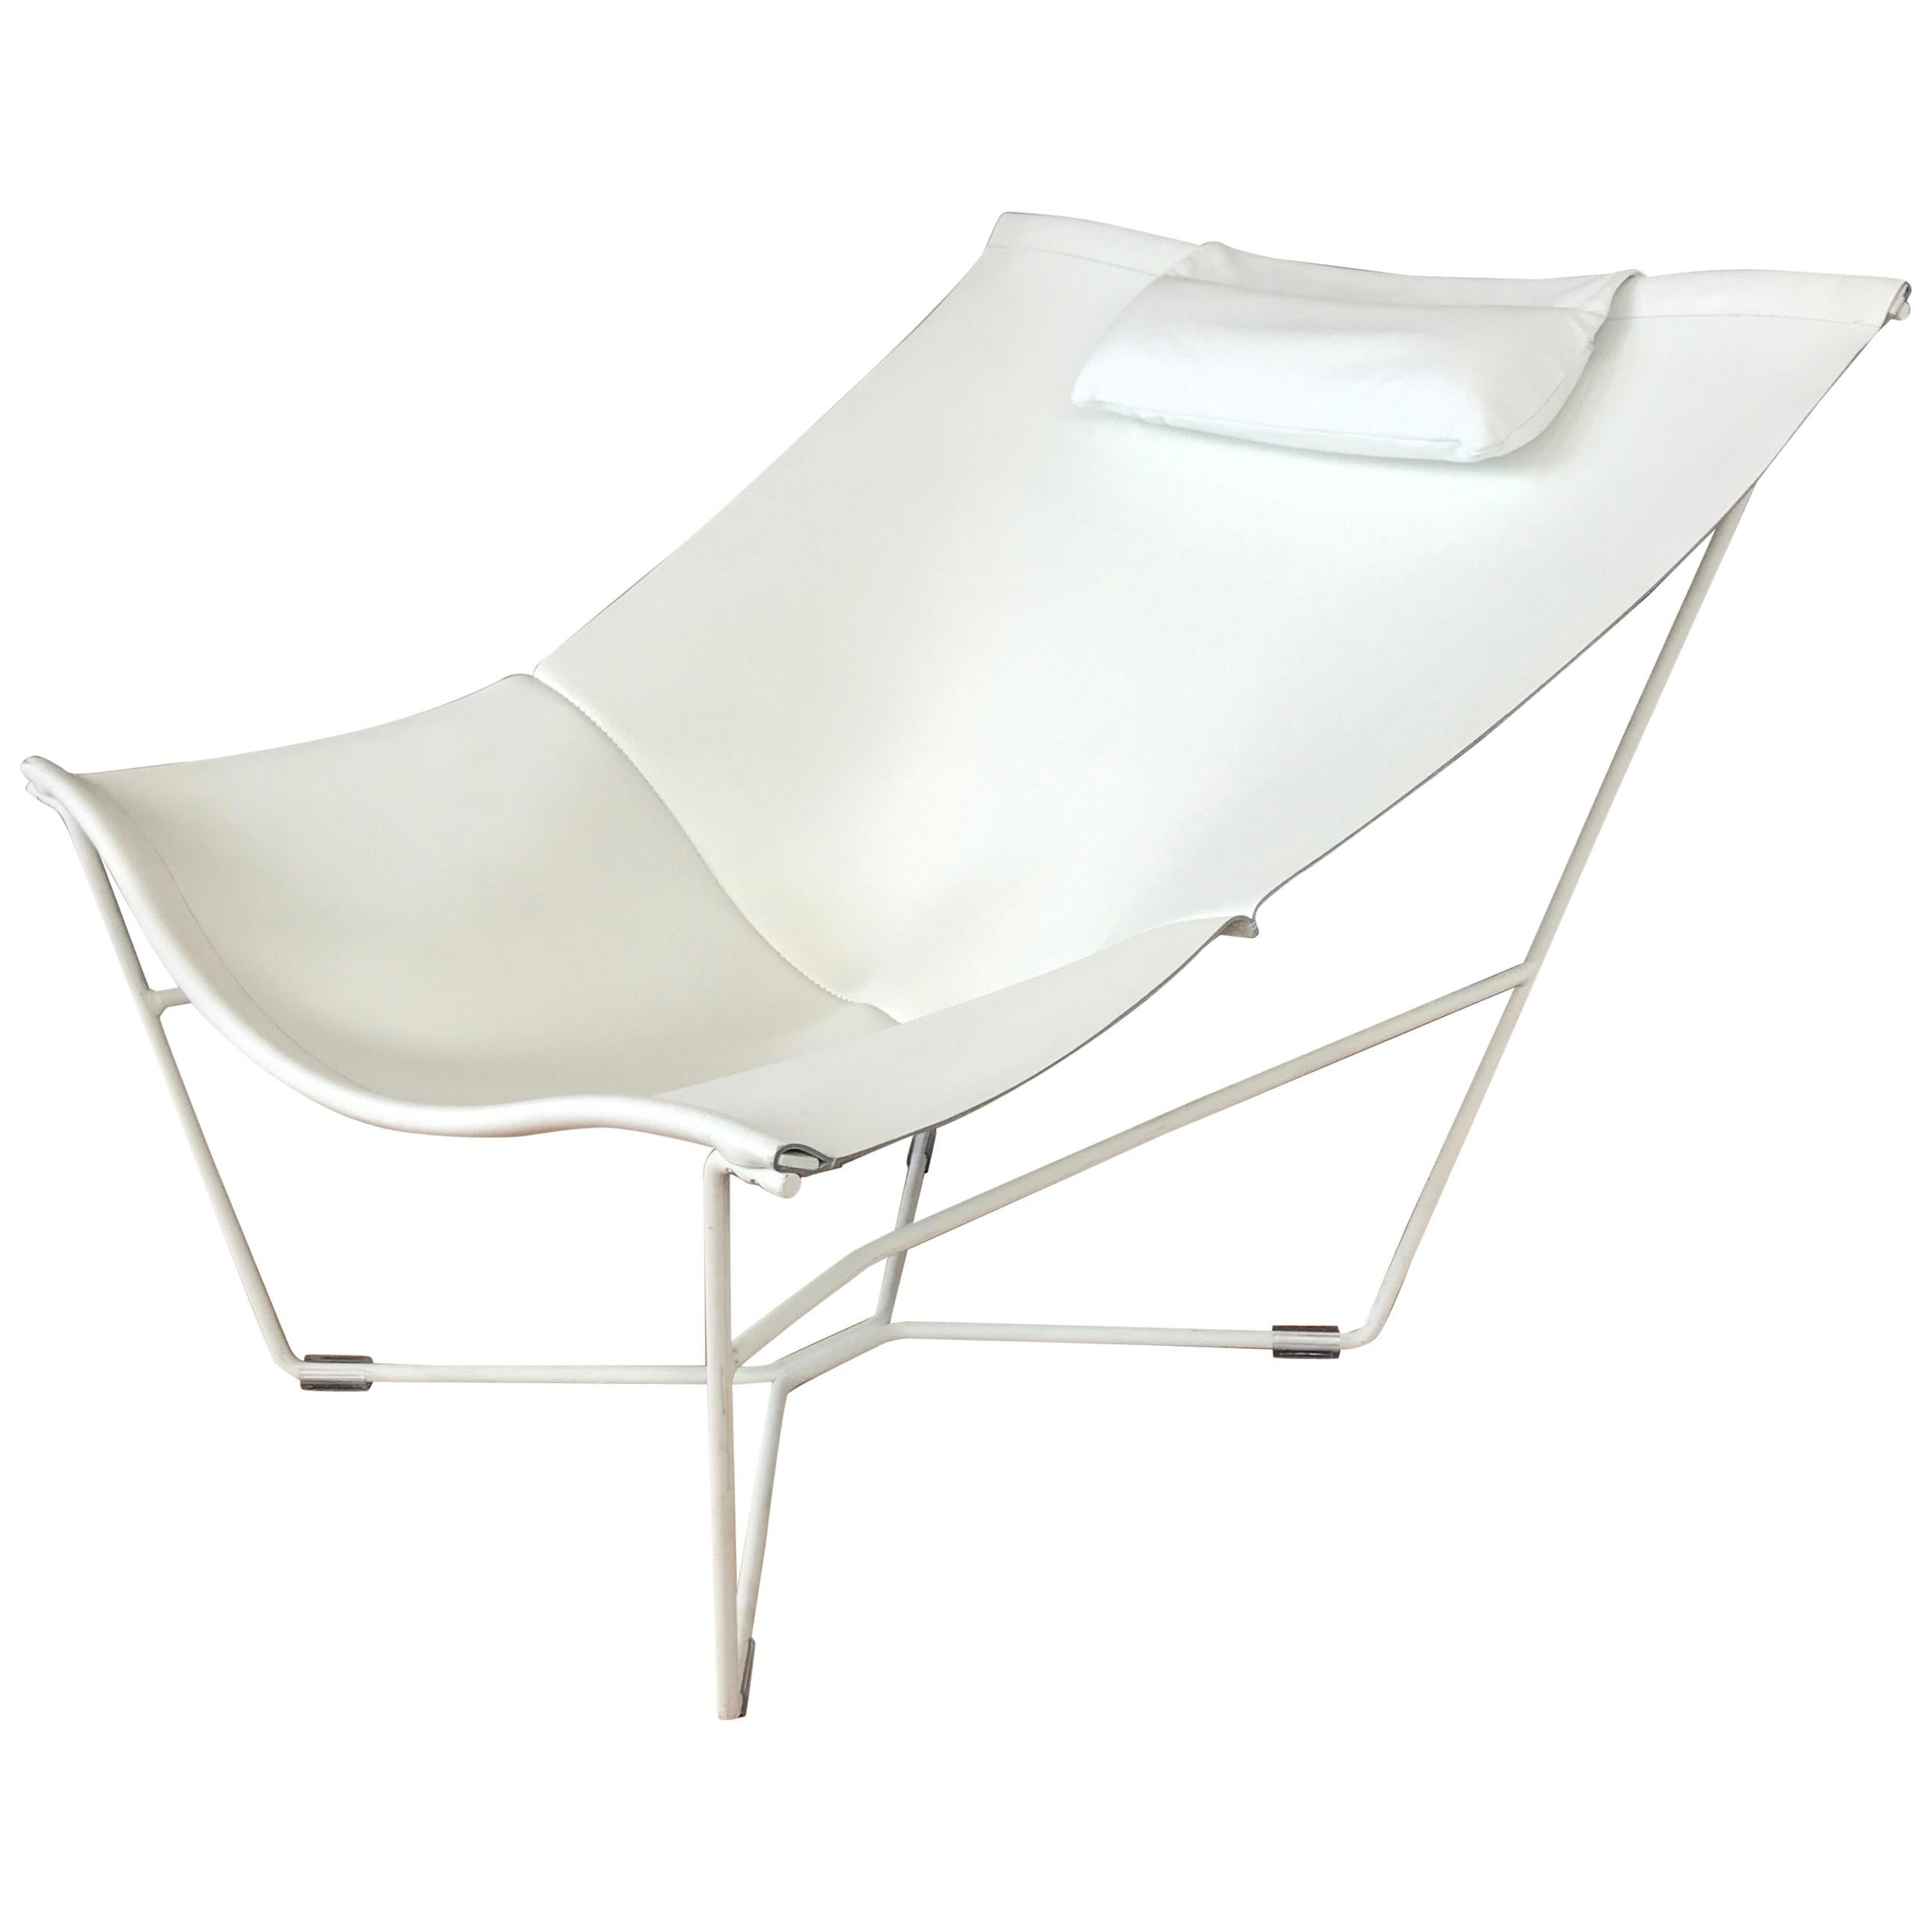 David Weeks White Leather Semana Sling Chair For Habitat For